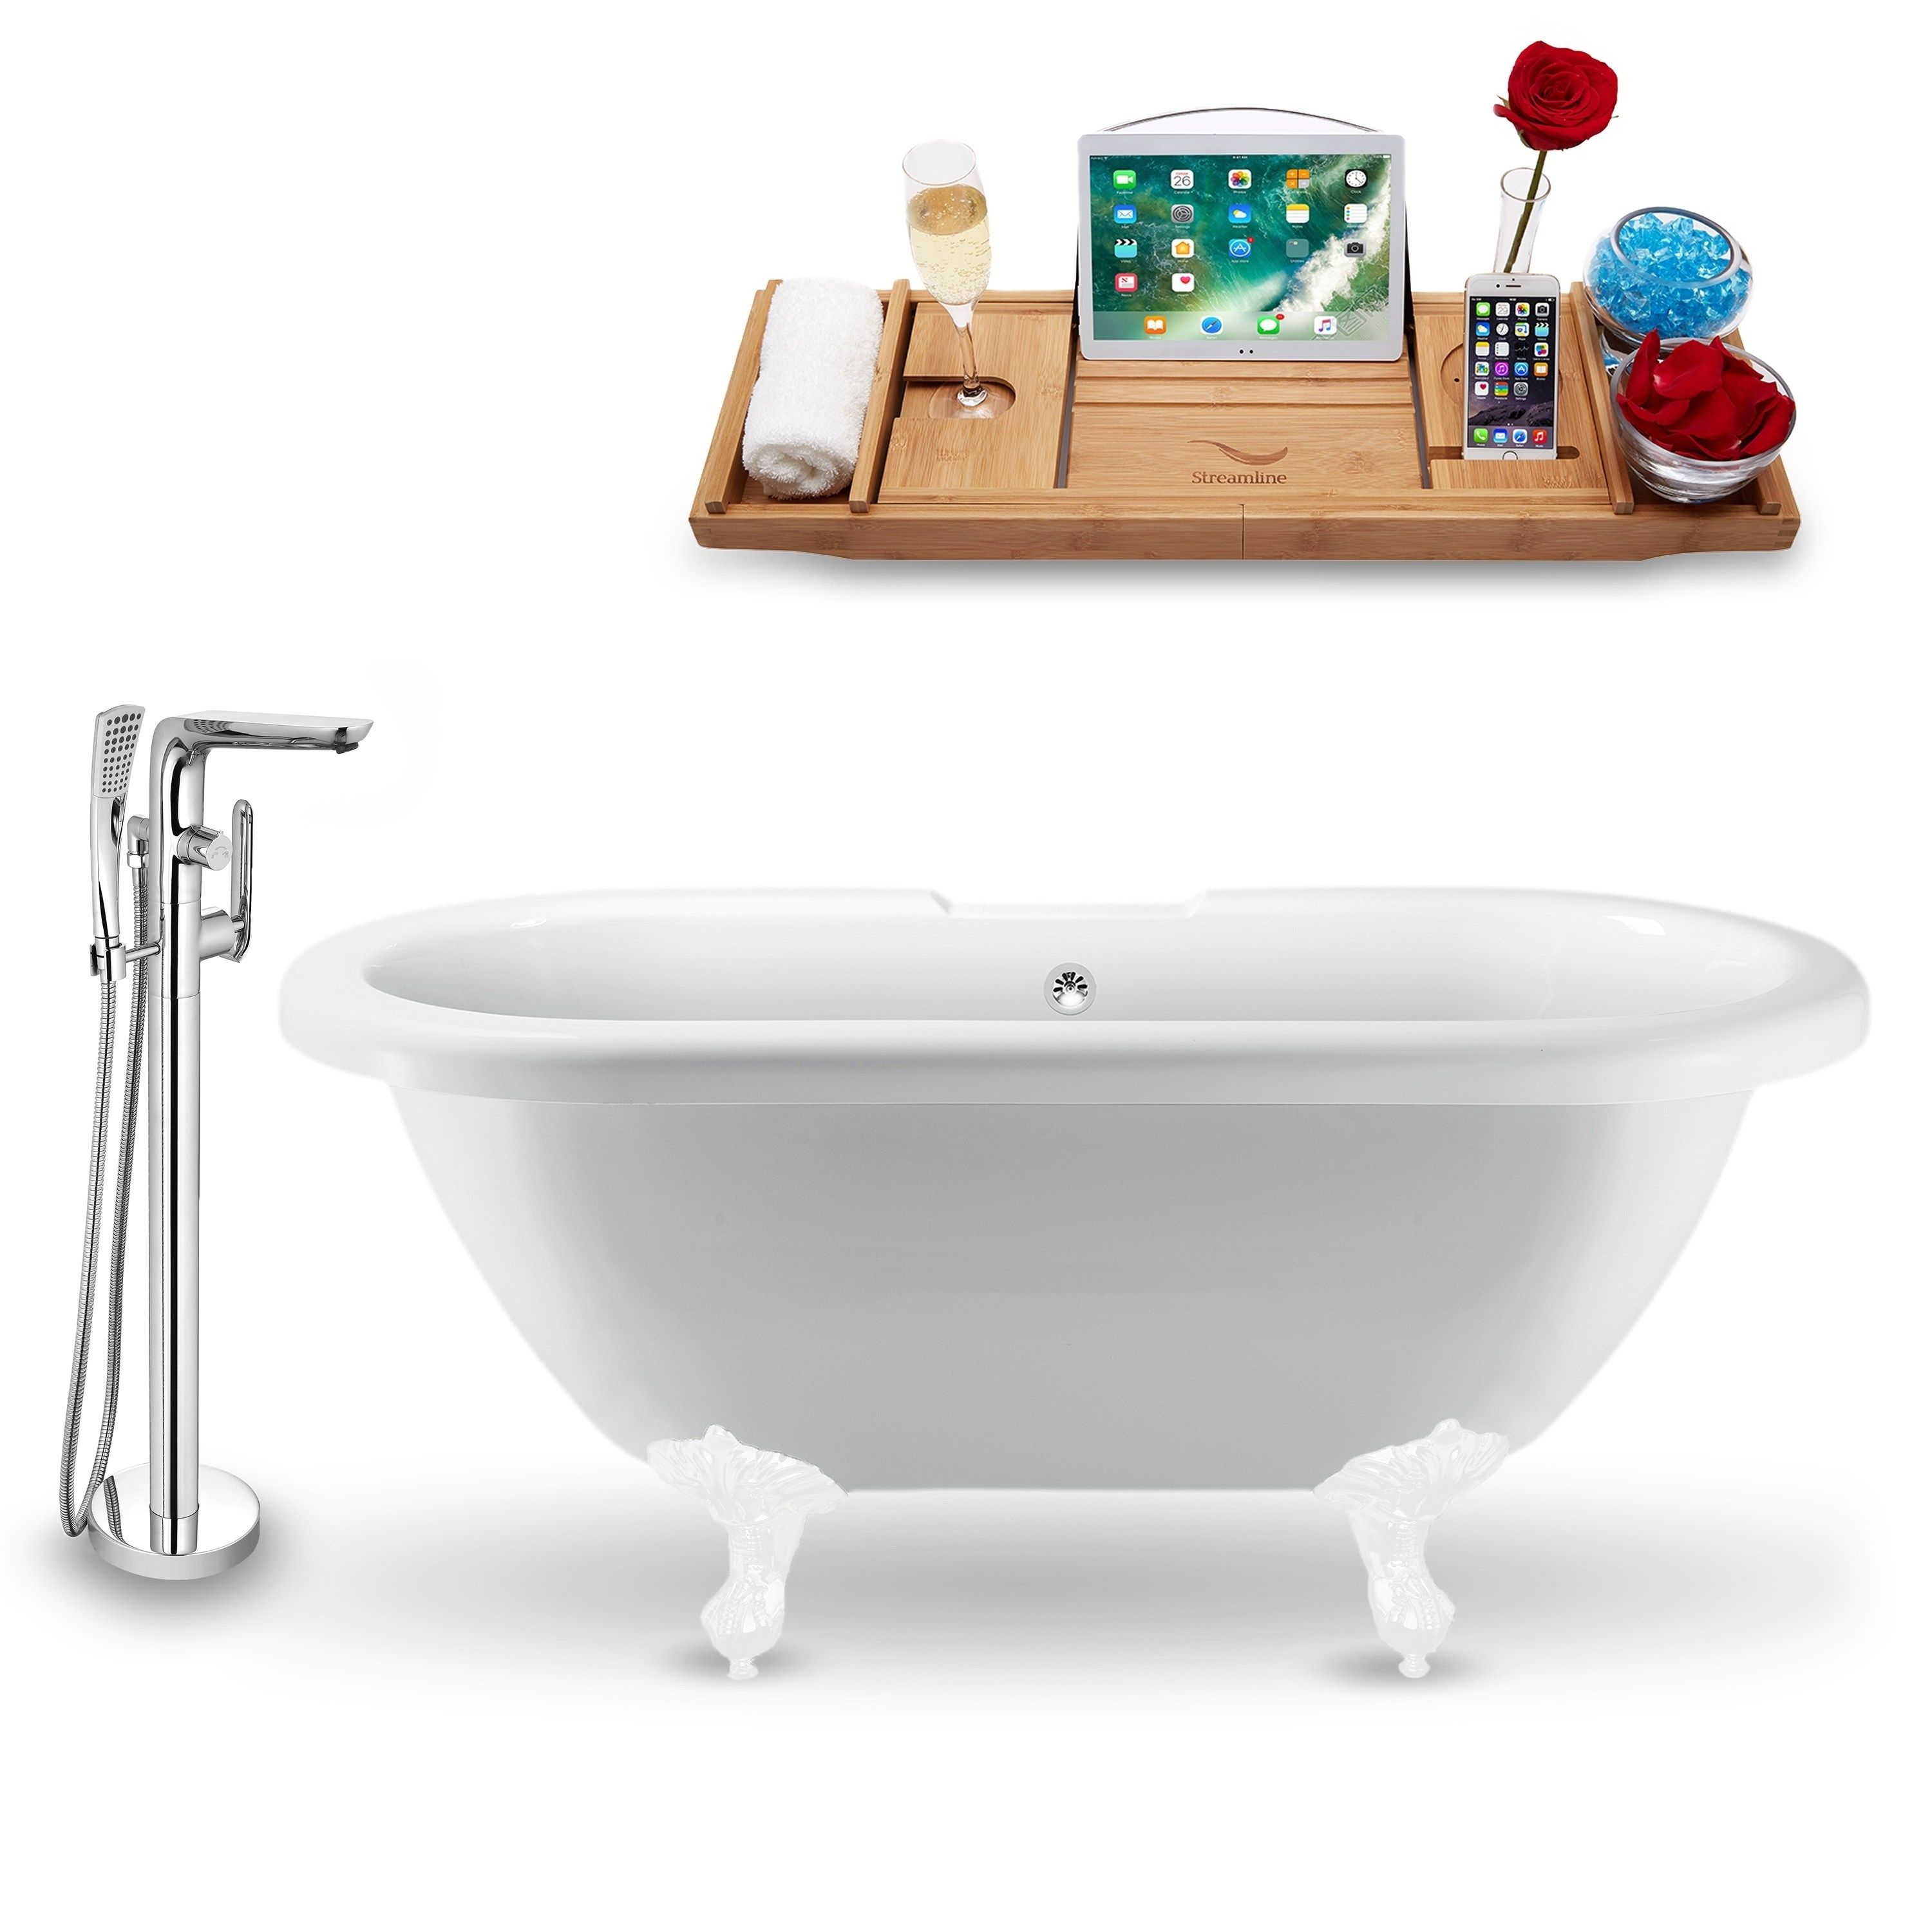 Tub Faucet And Tray Set Streamline 67 Clawfoot White Soaking